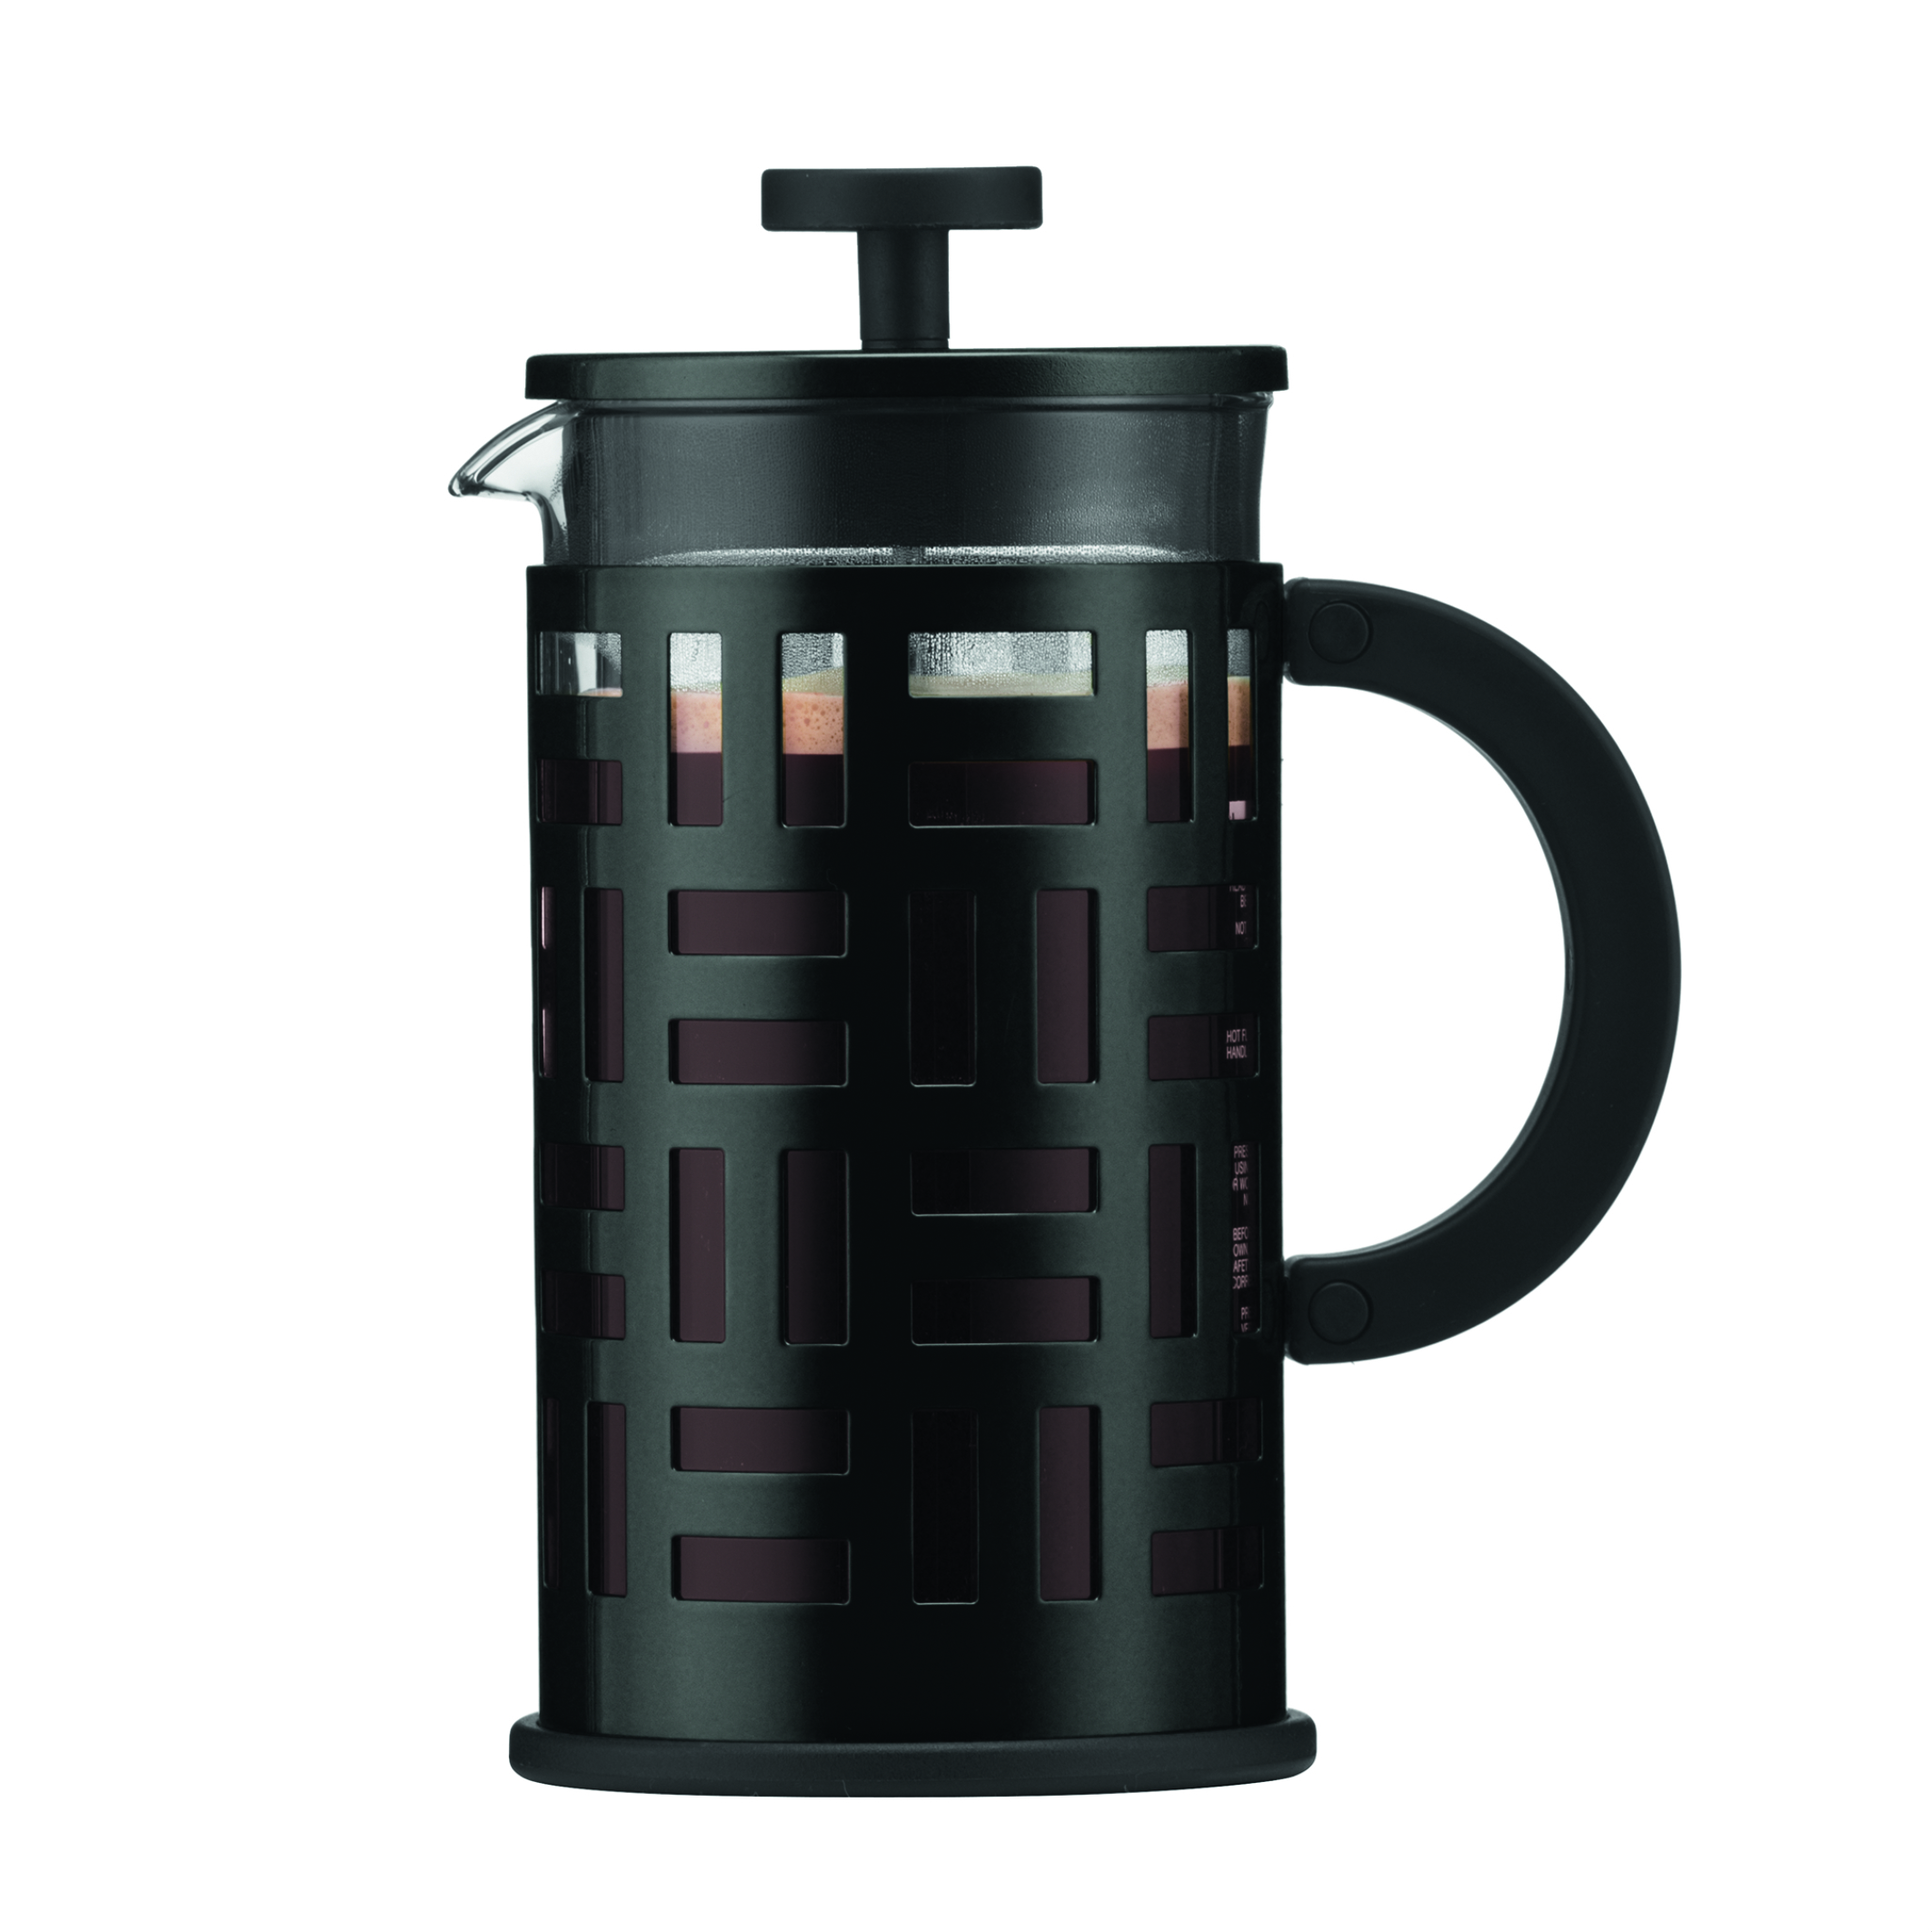 Bodum eileen cafeti re piston 8 tasses 1 0 l noir - Cafetiere a piston avis ...